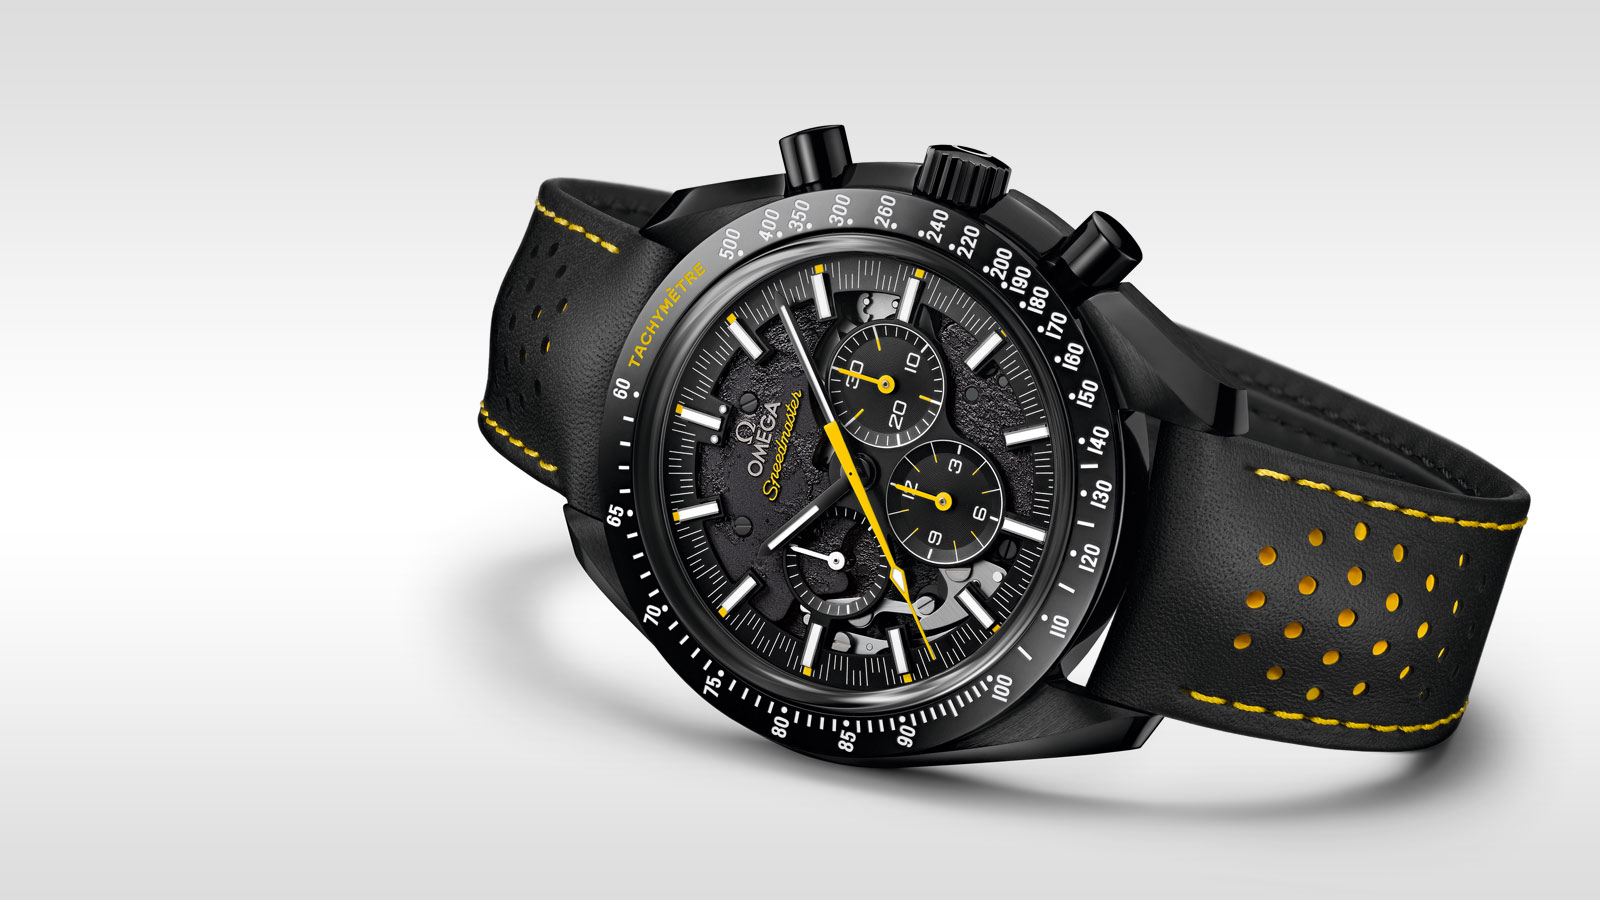 Speedmaster Moonwatch Moonwatch Chronograph 44,25 mm - 311.92.44.30.01.001 - Anzeigen 2